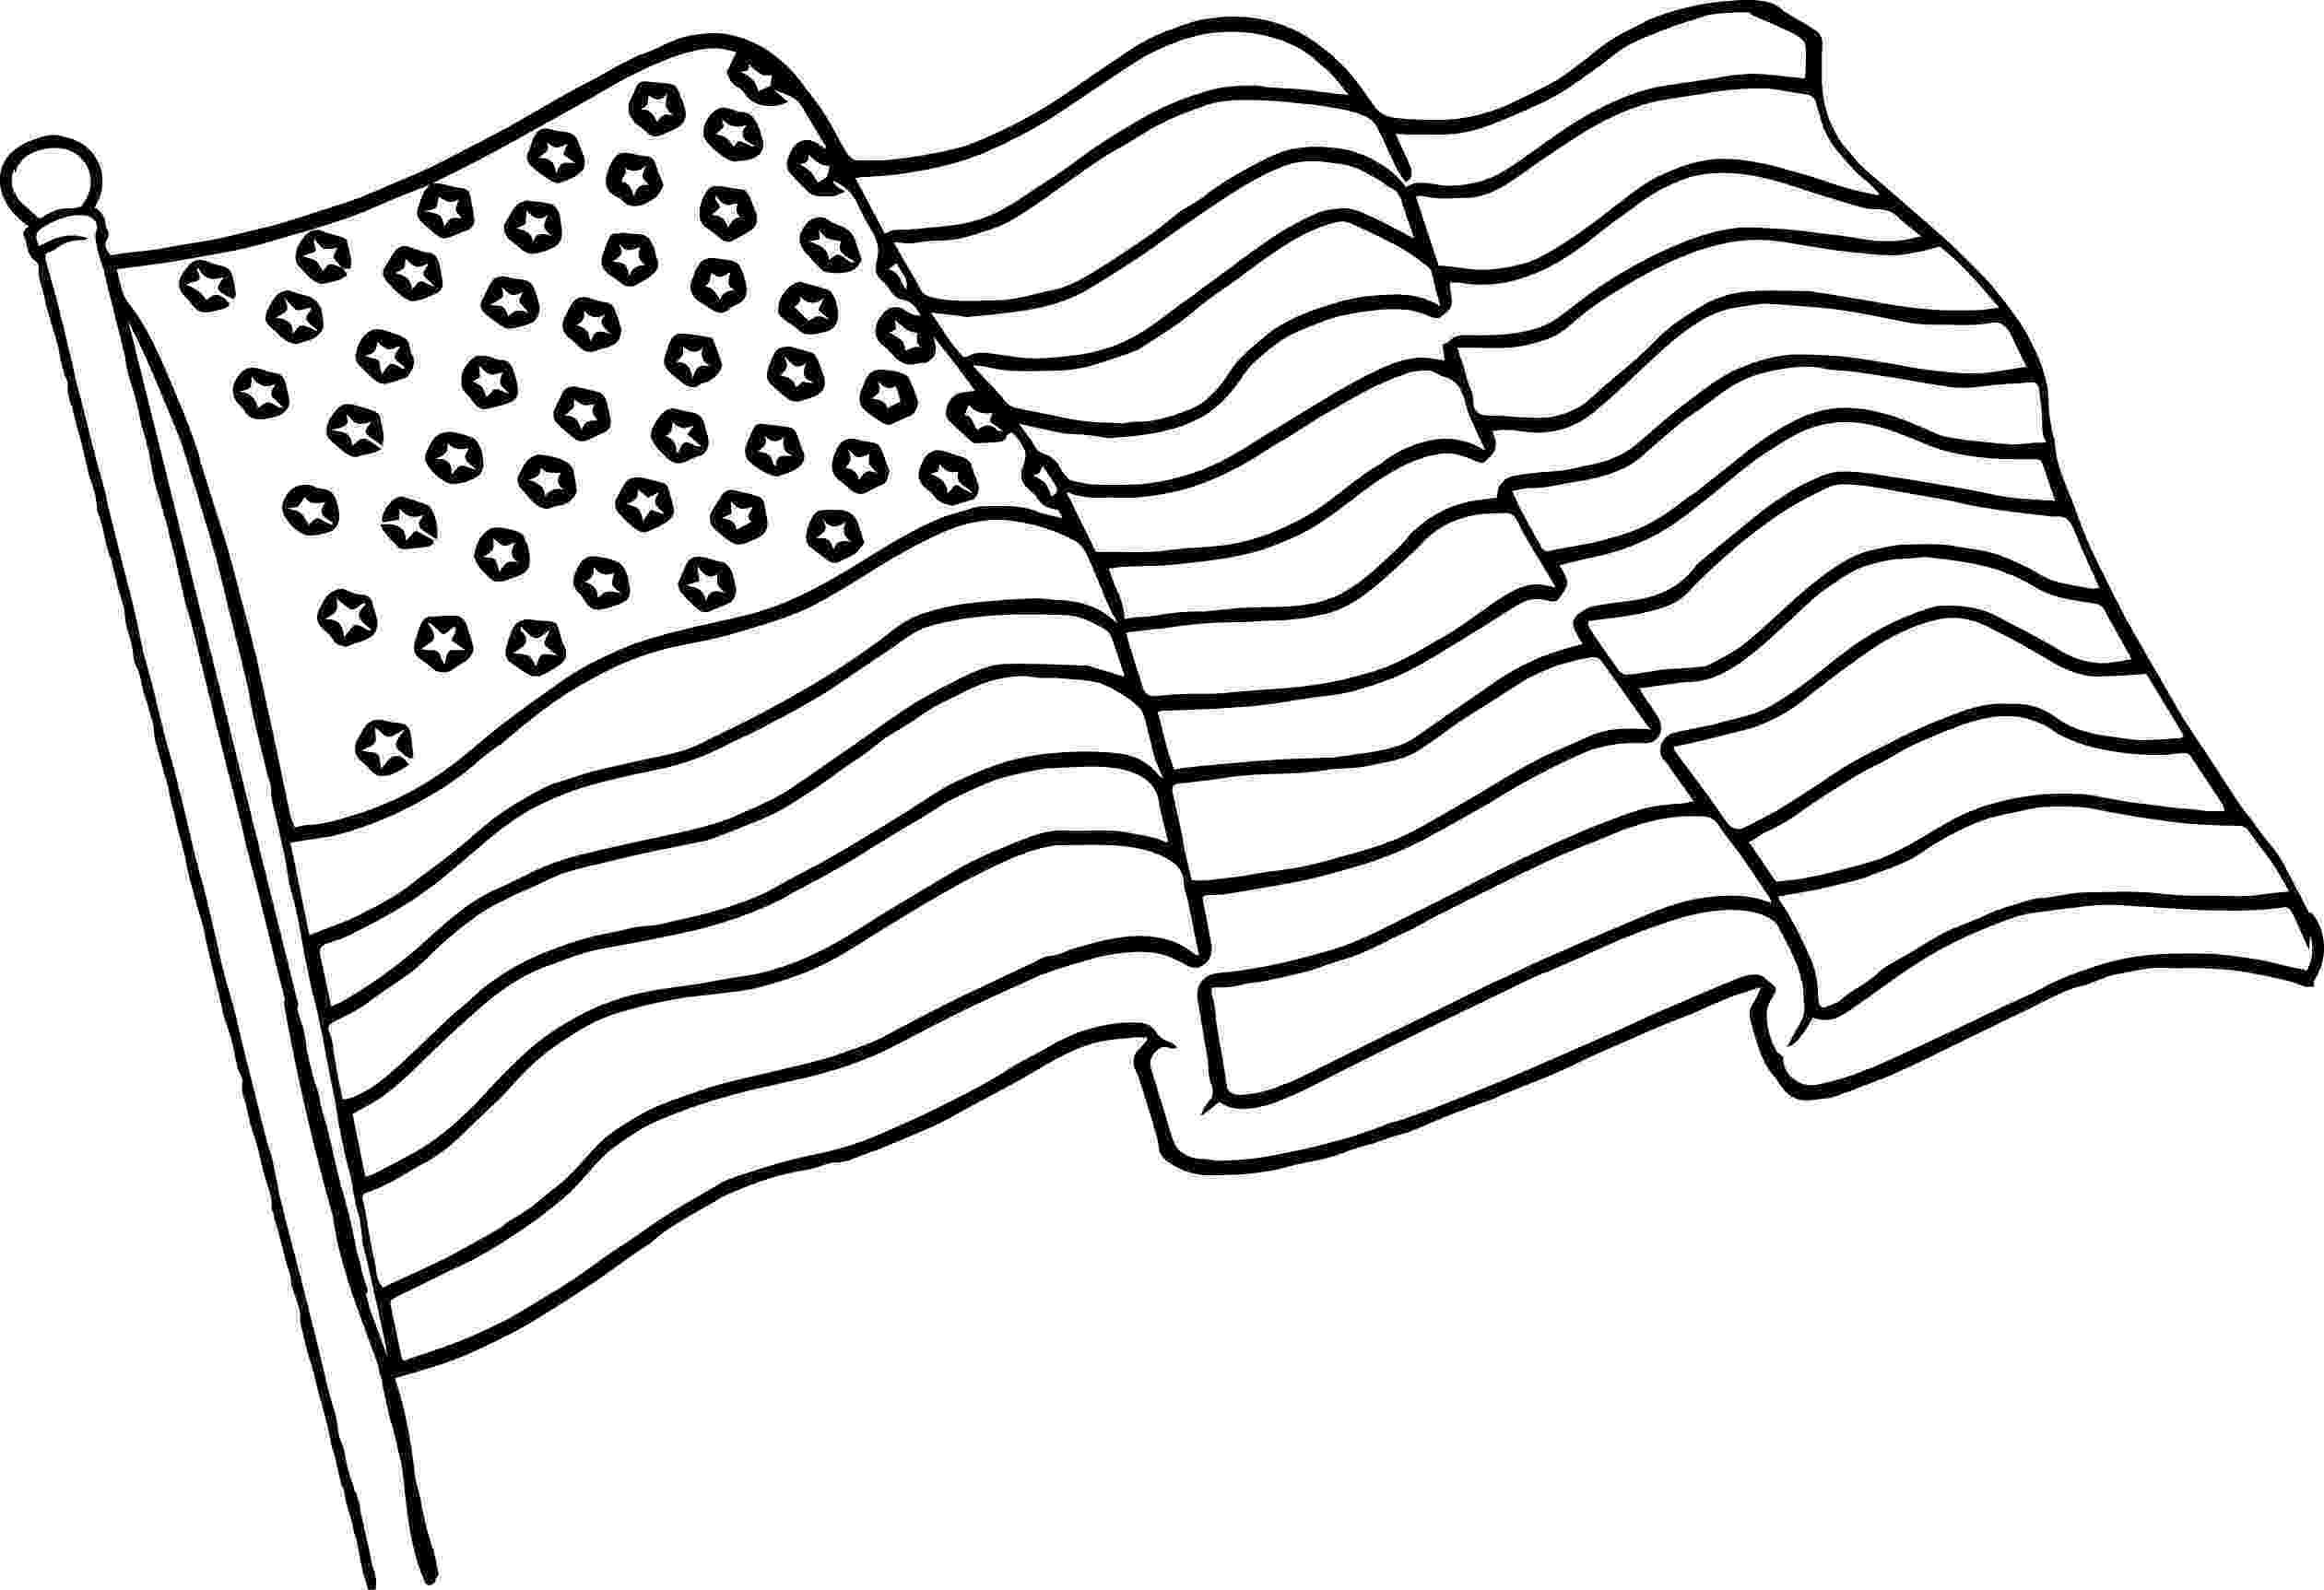 coloring pages of flags american flag coloring page for the love of the country coloring pages flags of